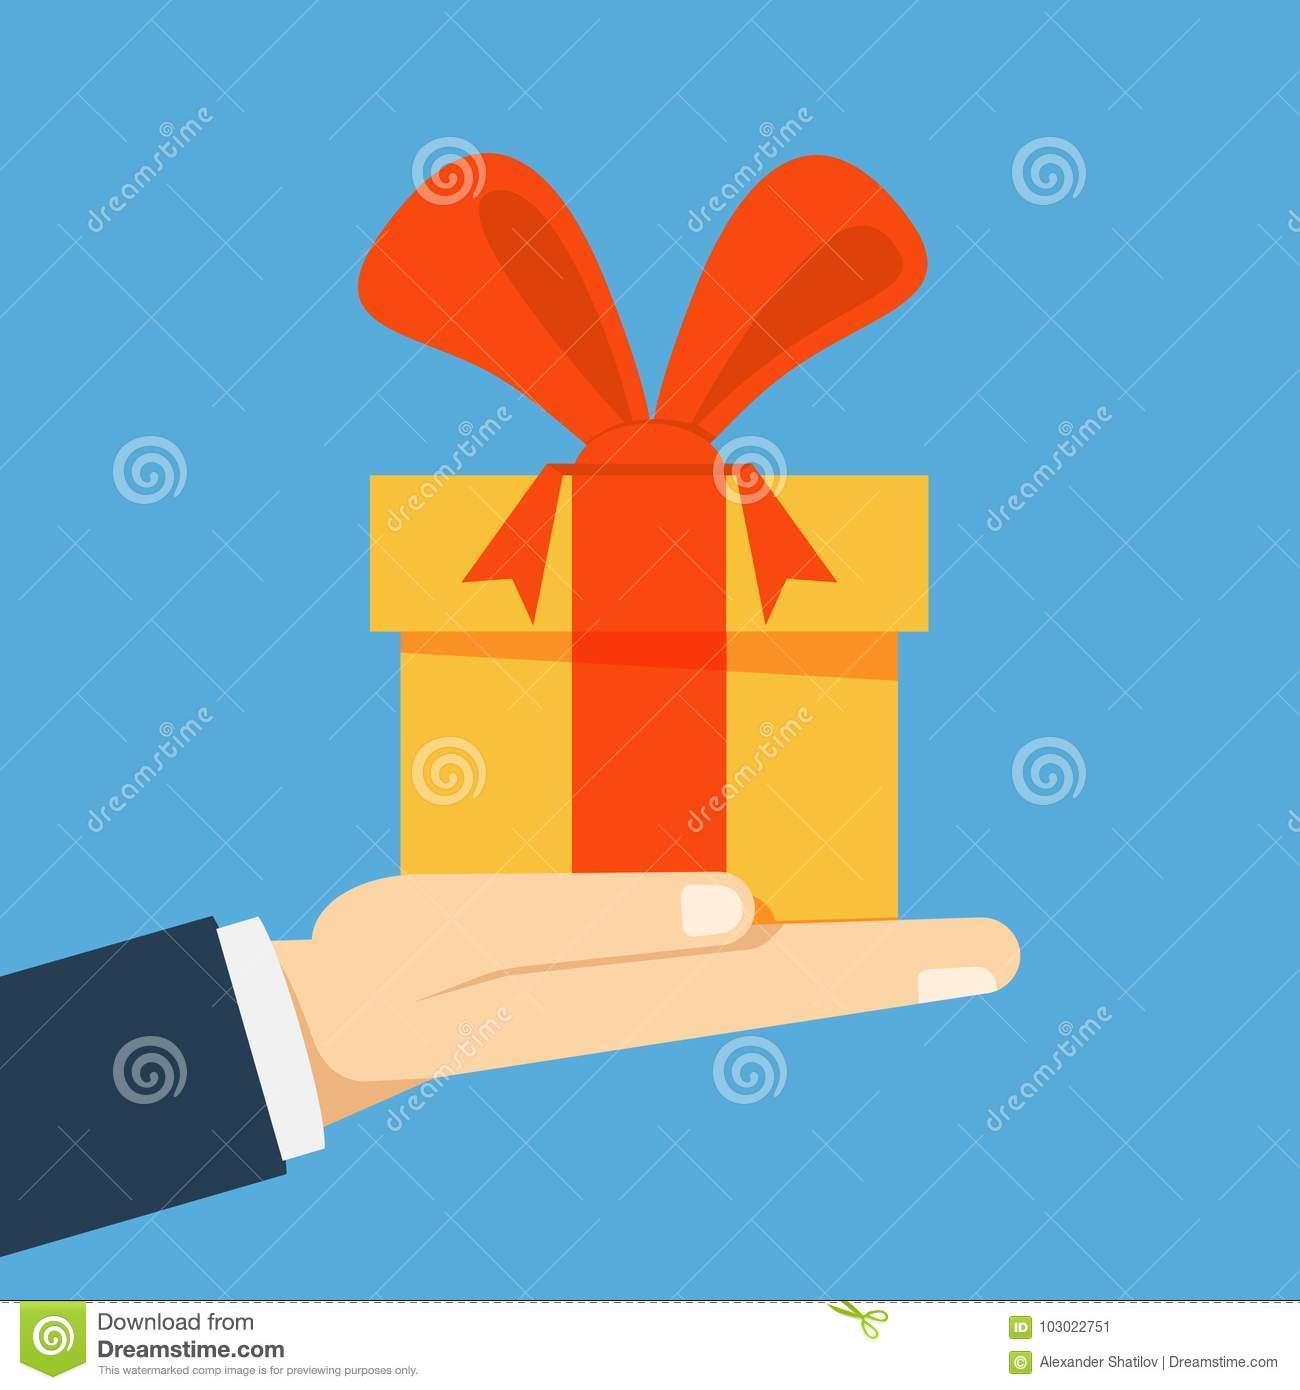 Gift Box With A Bow On His Hand Businessman Manager Or Seller Proposes To Take For Holiday Birthday Vector Flat Illustration